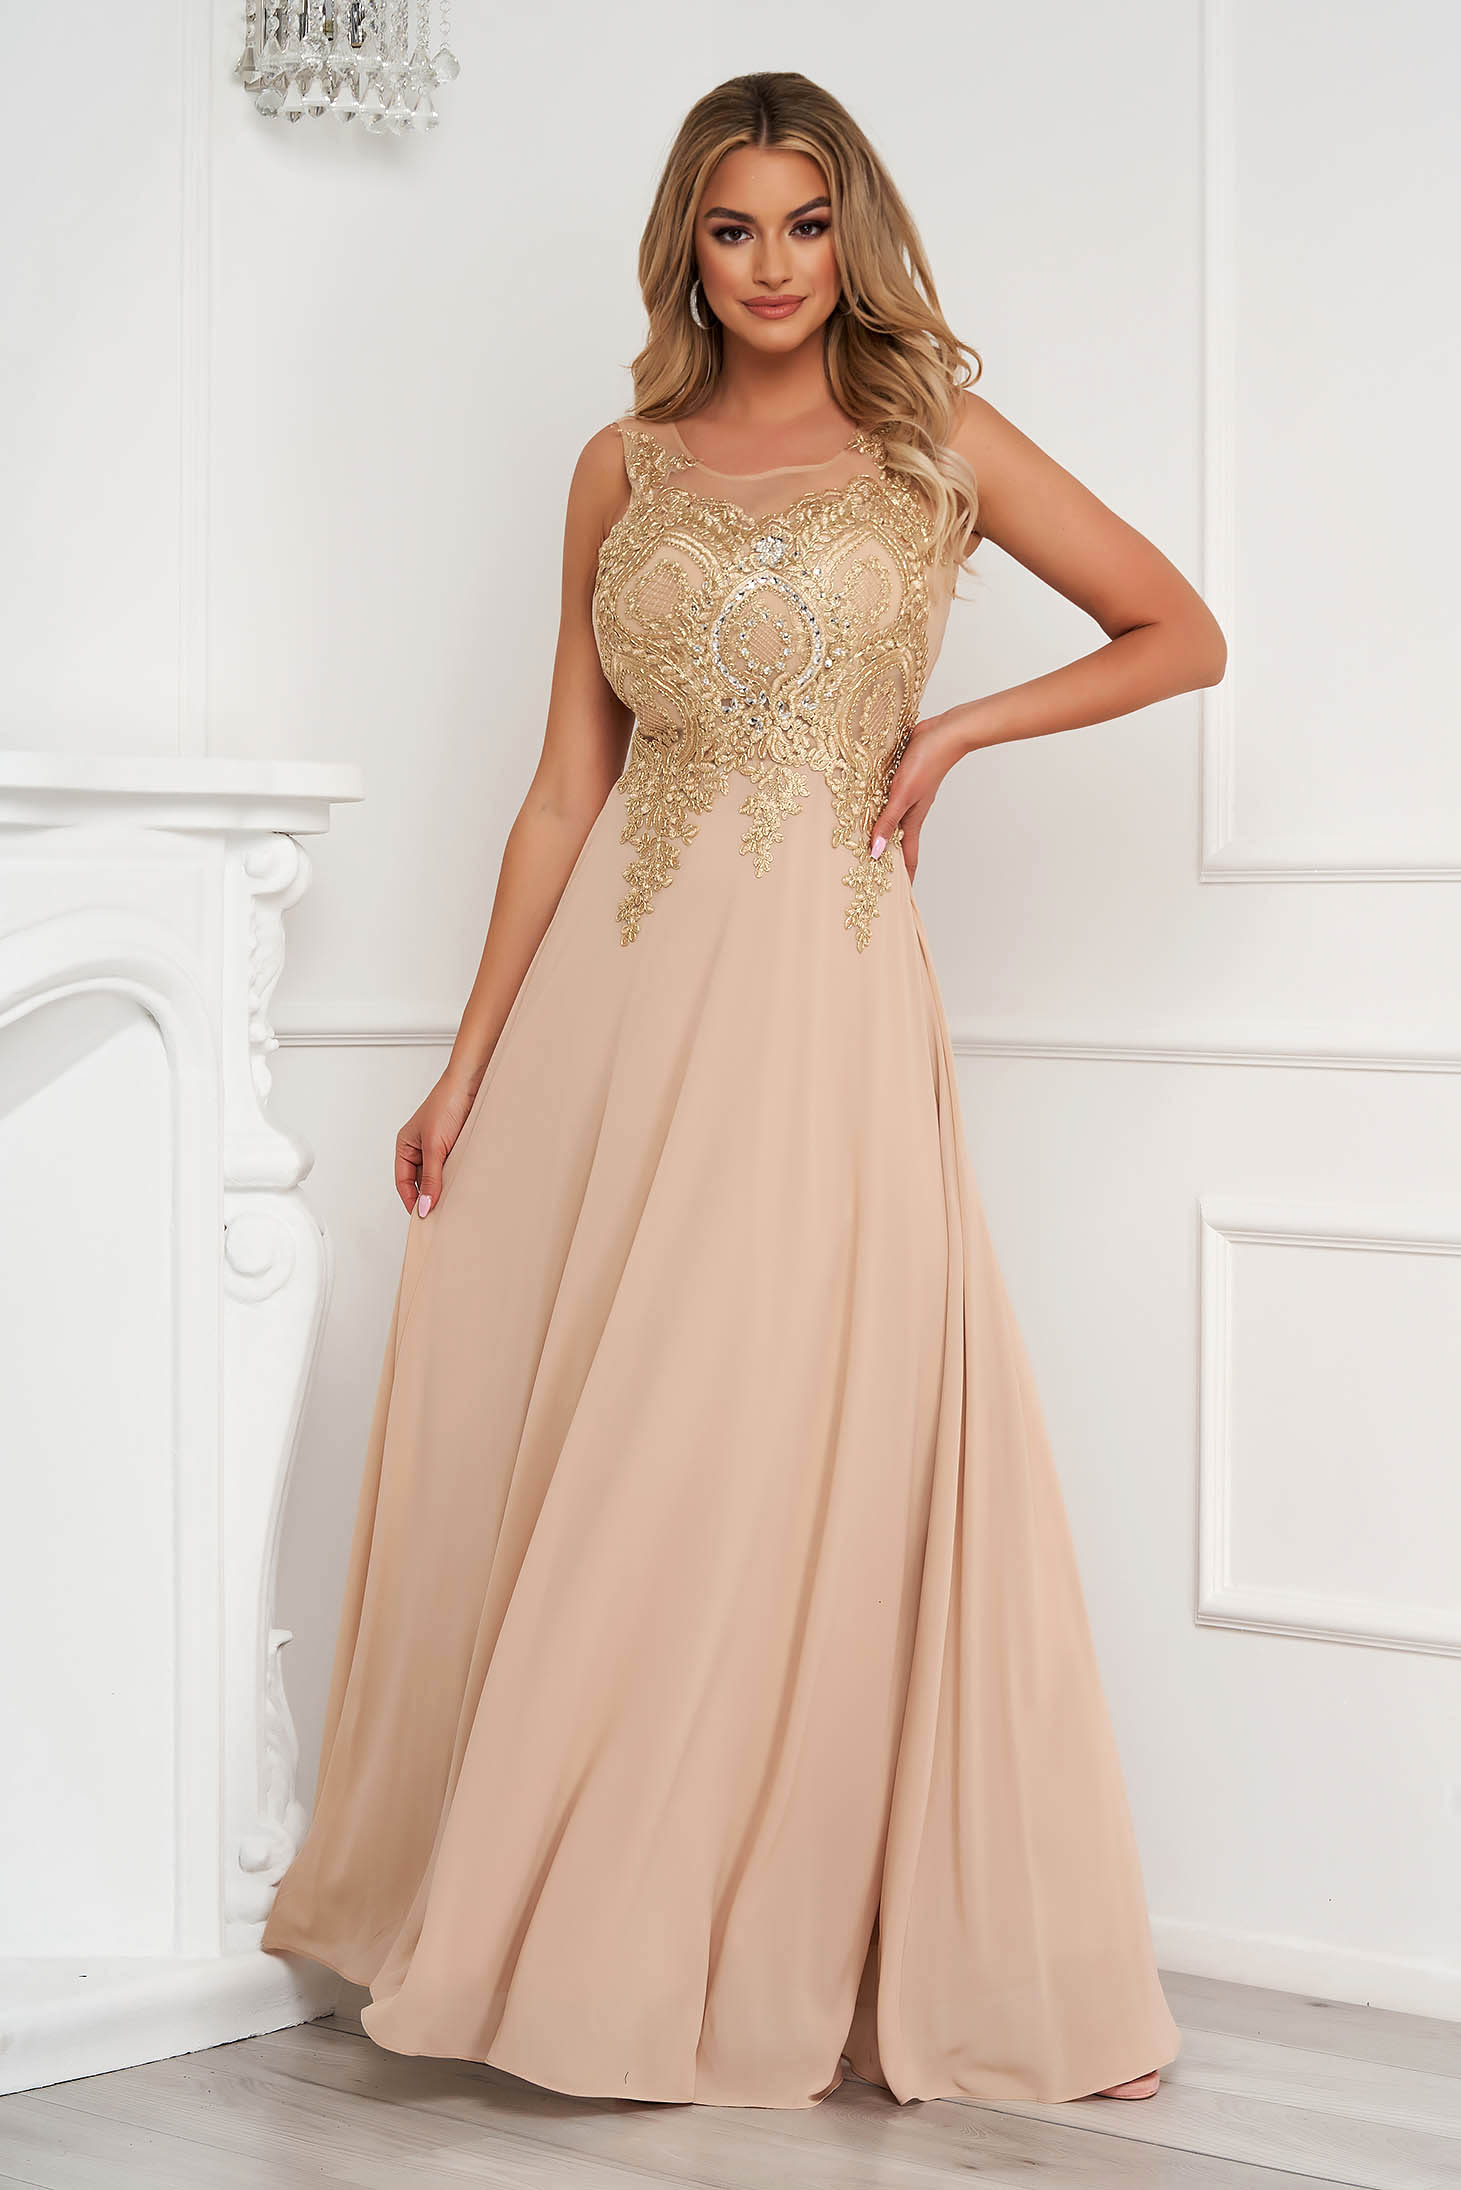 Cappuccino dress long occasional cloche from tulle front embroidery with crystal embellished details